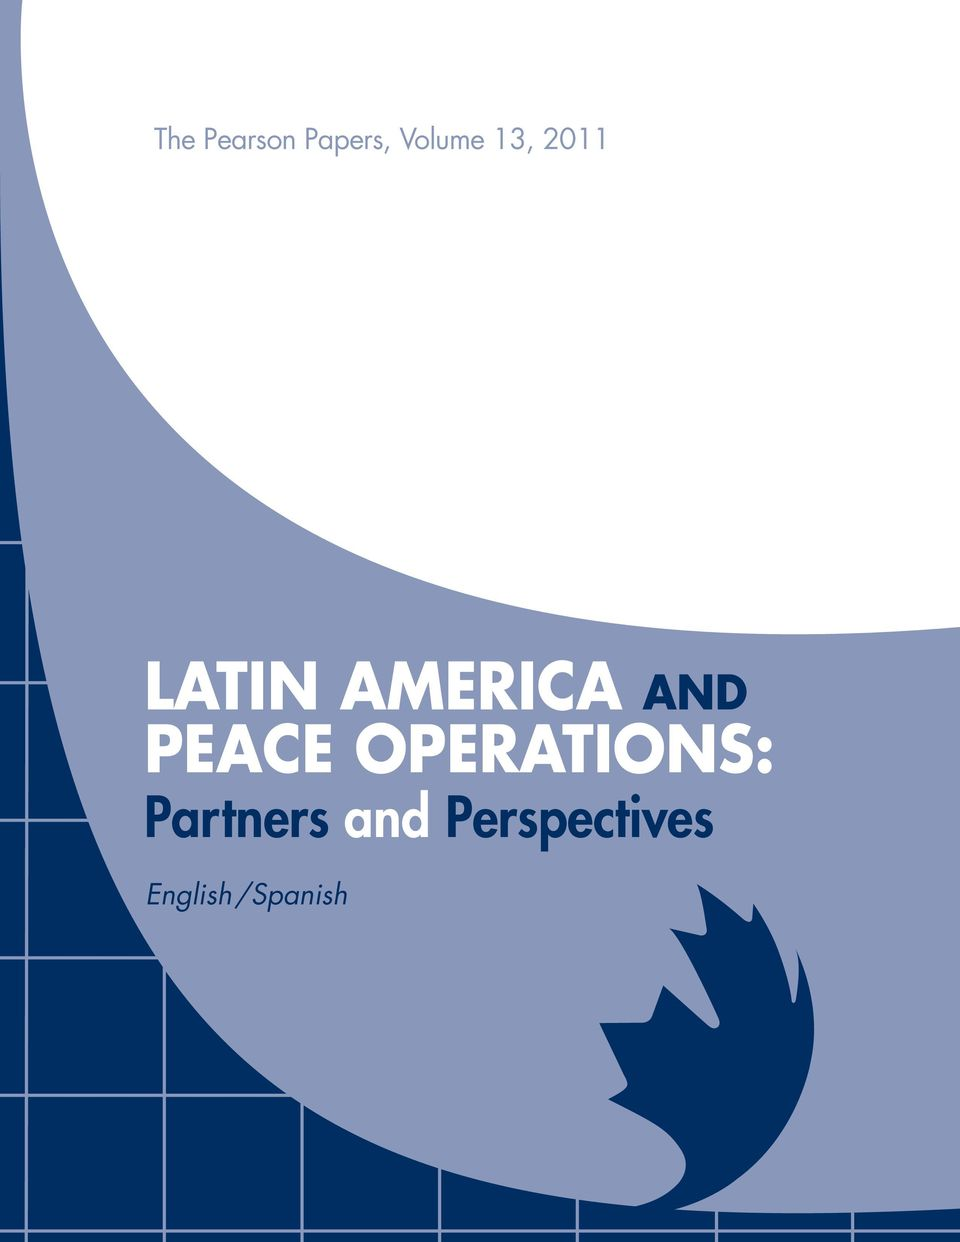 Peace Operations: Partners